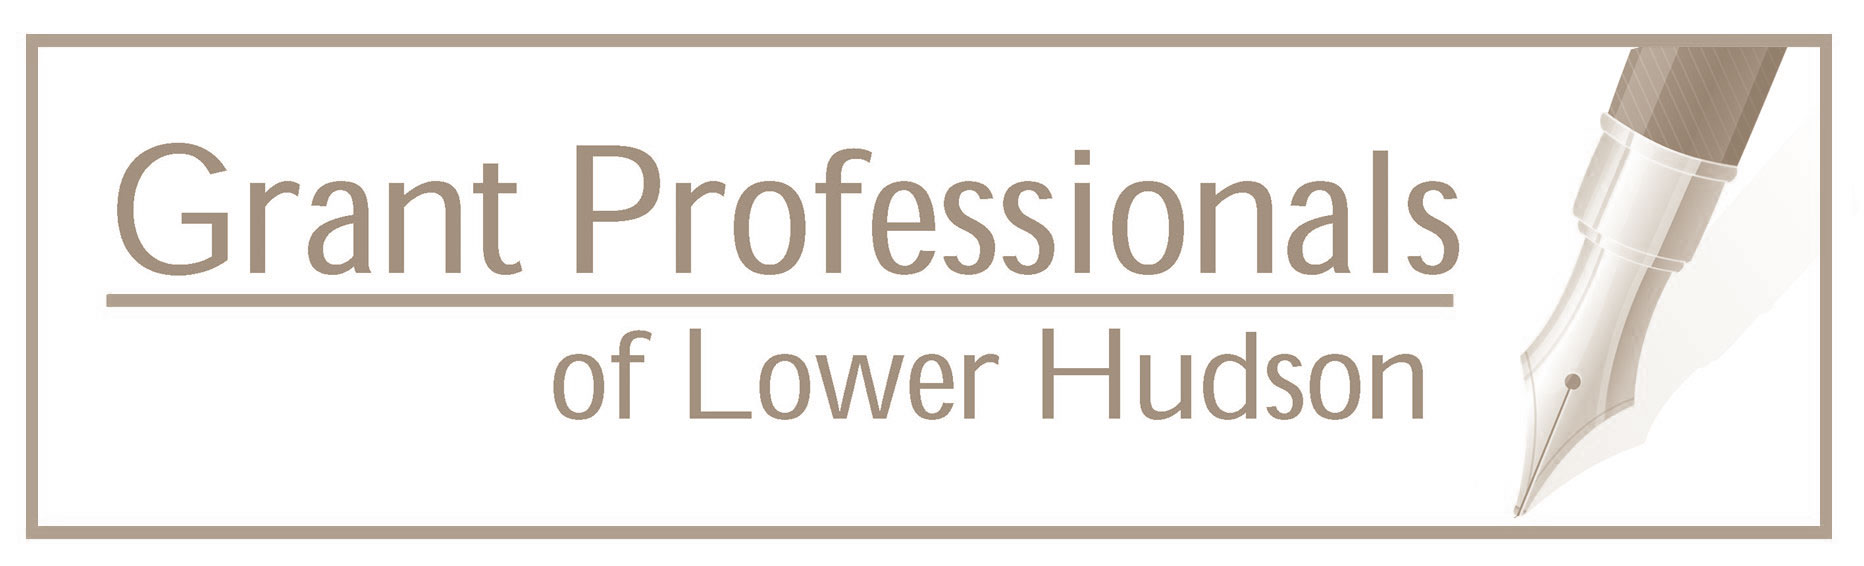 Grant Professionals of Lower Hudson, NY